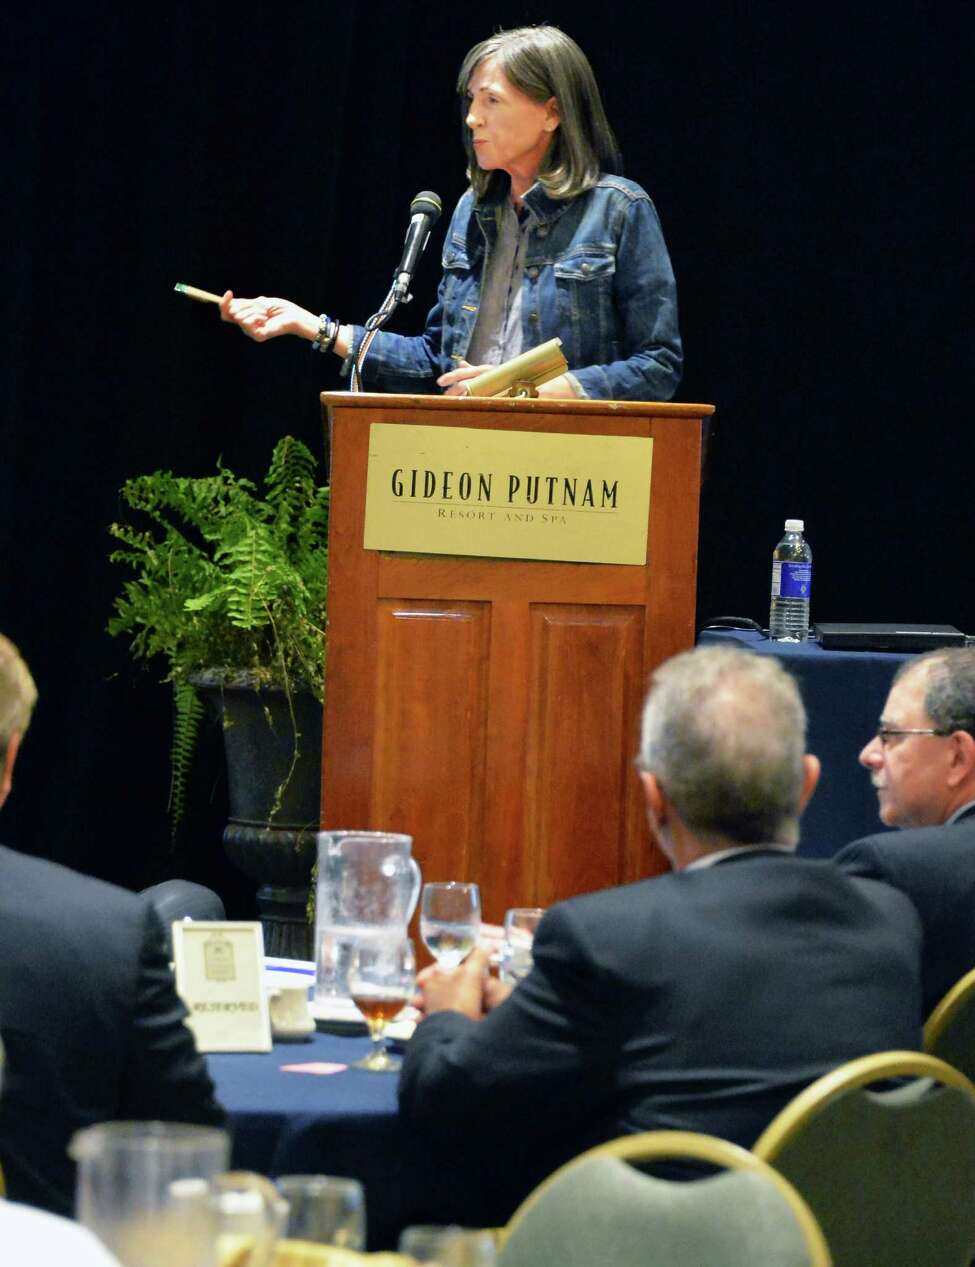 Former Clinton EPA head, Carol M. Browner, now a member of the Leadership Council of Nuclear Matters, addresses the Independent Power Producers of New York's Annual Fall Conference at the Gideon Putnam Resort Tuesday. Sept. 9, 2014, in Saratoga Springs, N.Y. (John Carl D'Annibale / Times Union)